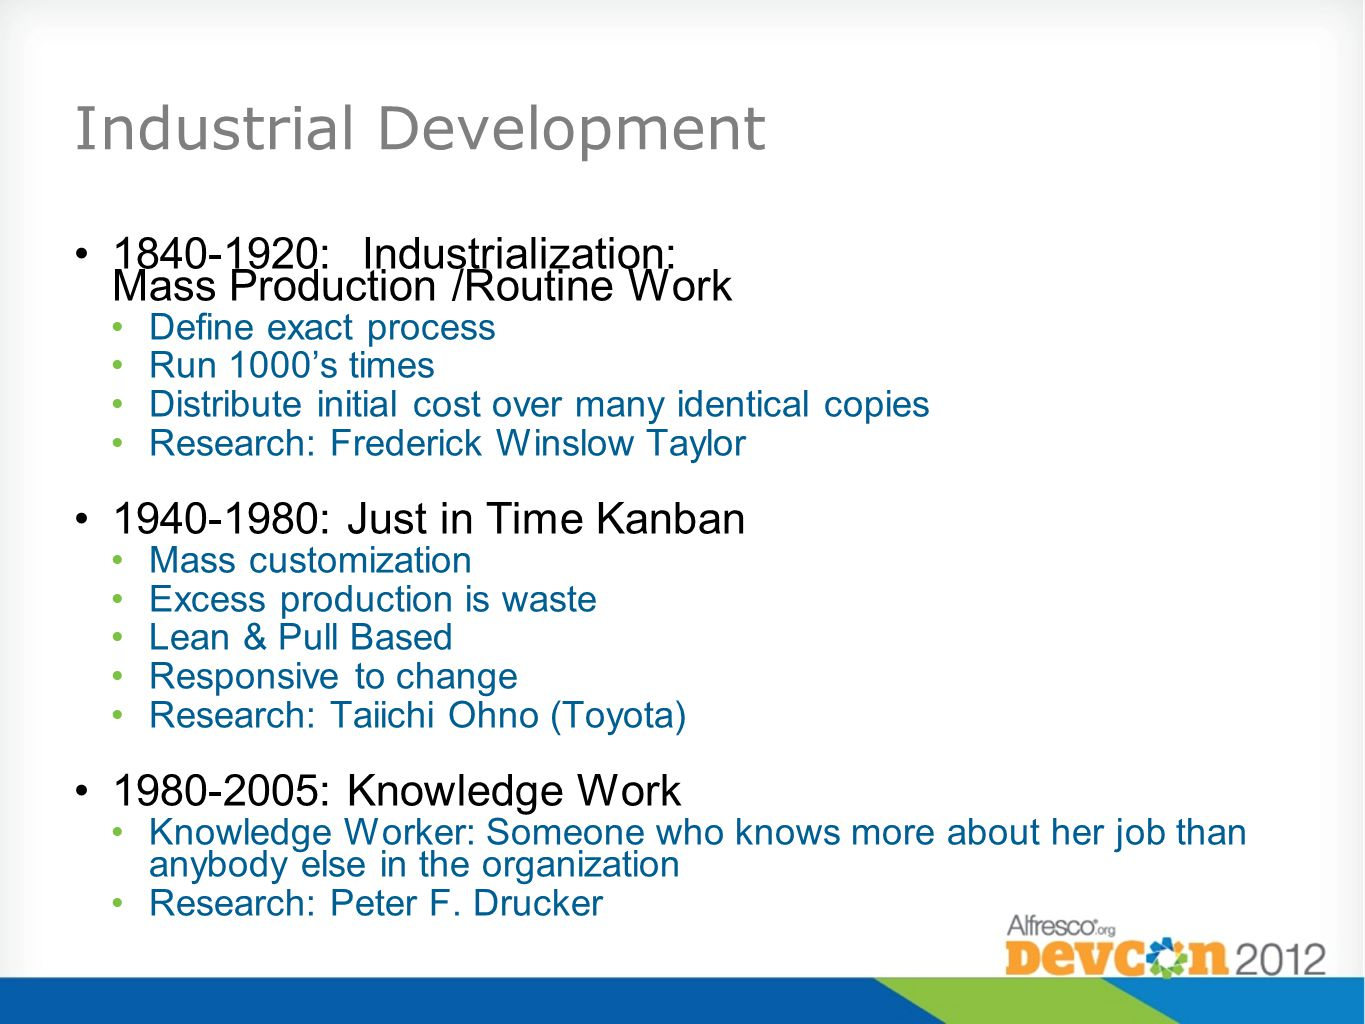 Industrial Development 1840-1920:Industrialization: Mass Production /Routine Work Define exact process Run 1000s times Distribute initial cost over many identical copies Research: Frederick Winslow Taylor 1940-1980: Just in Time Kanban Mass customization Excess production is waste Lean & Pull Based Responsive to change Research: Taiichi Ohno (Toyota) 1980-2005: Knowledge Work Knowledge Worker: Someone who knows more about her job than anybody else in the organization Research: Peter F.